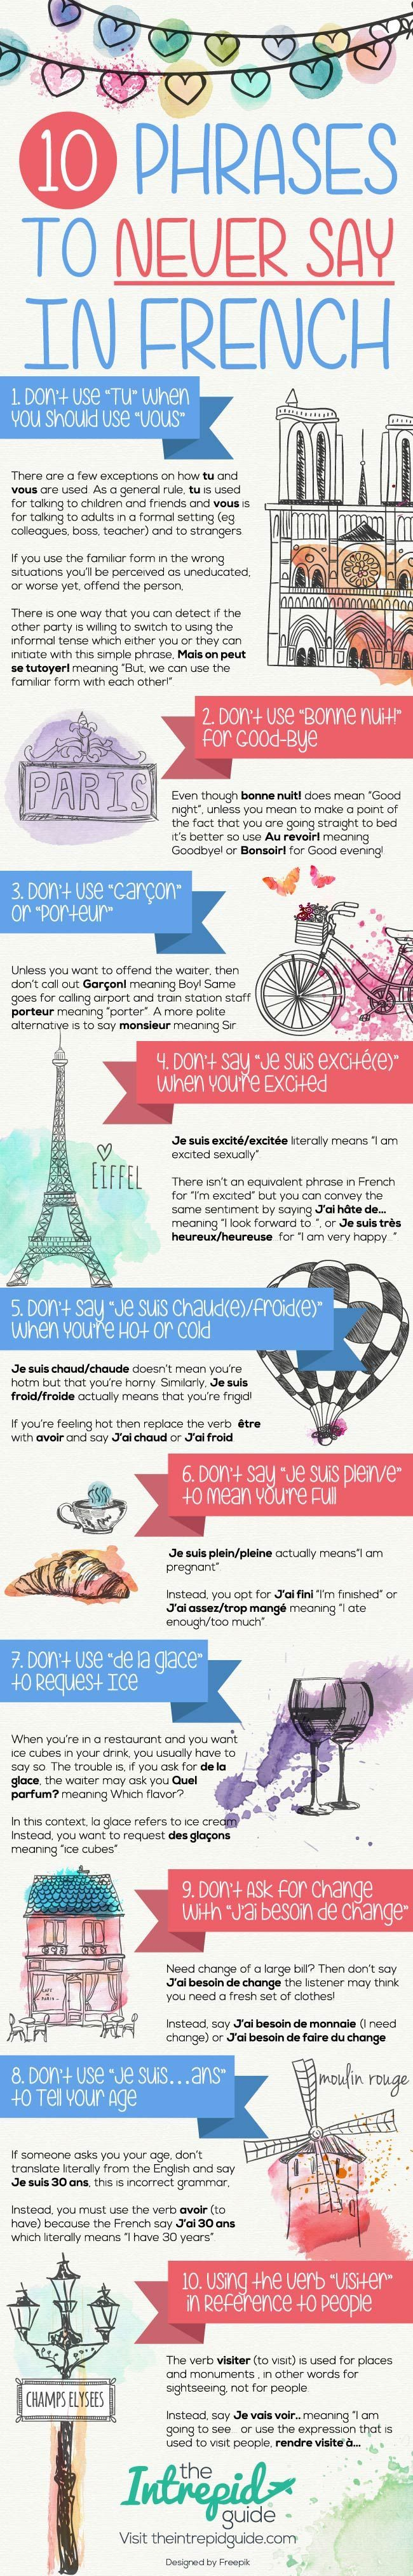 Top 10 Phrases to Never Say in French [Cheat-Sheet]